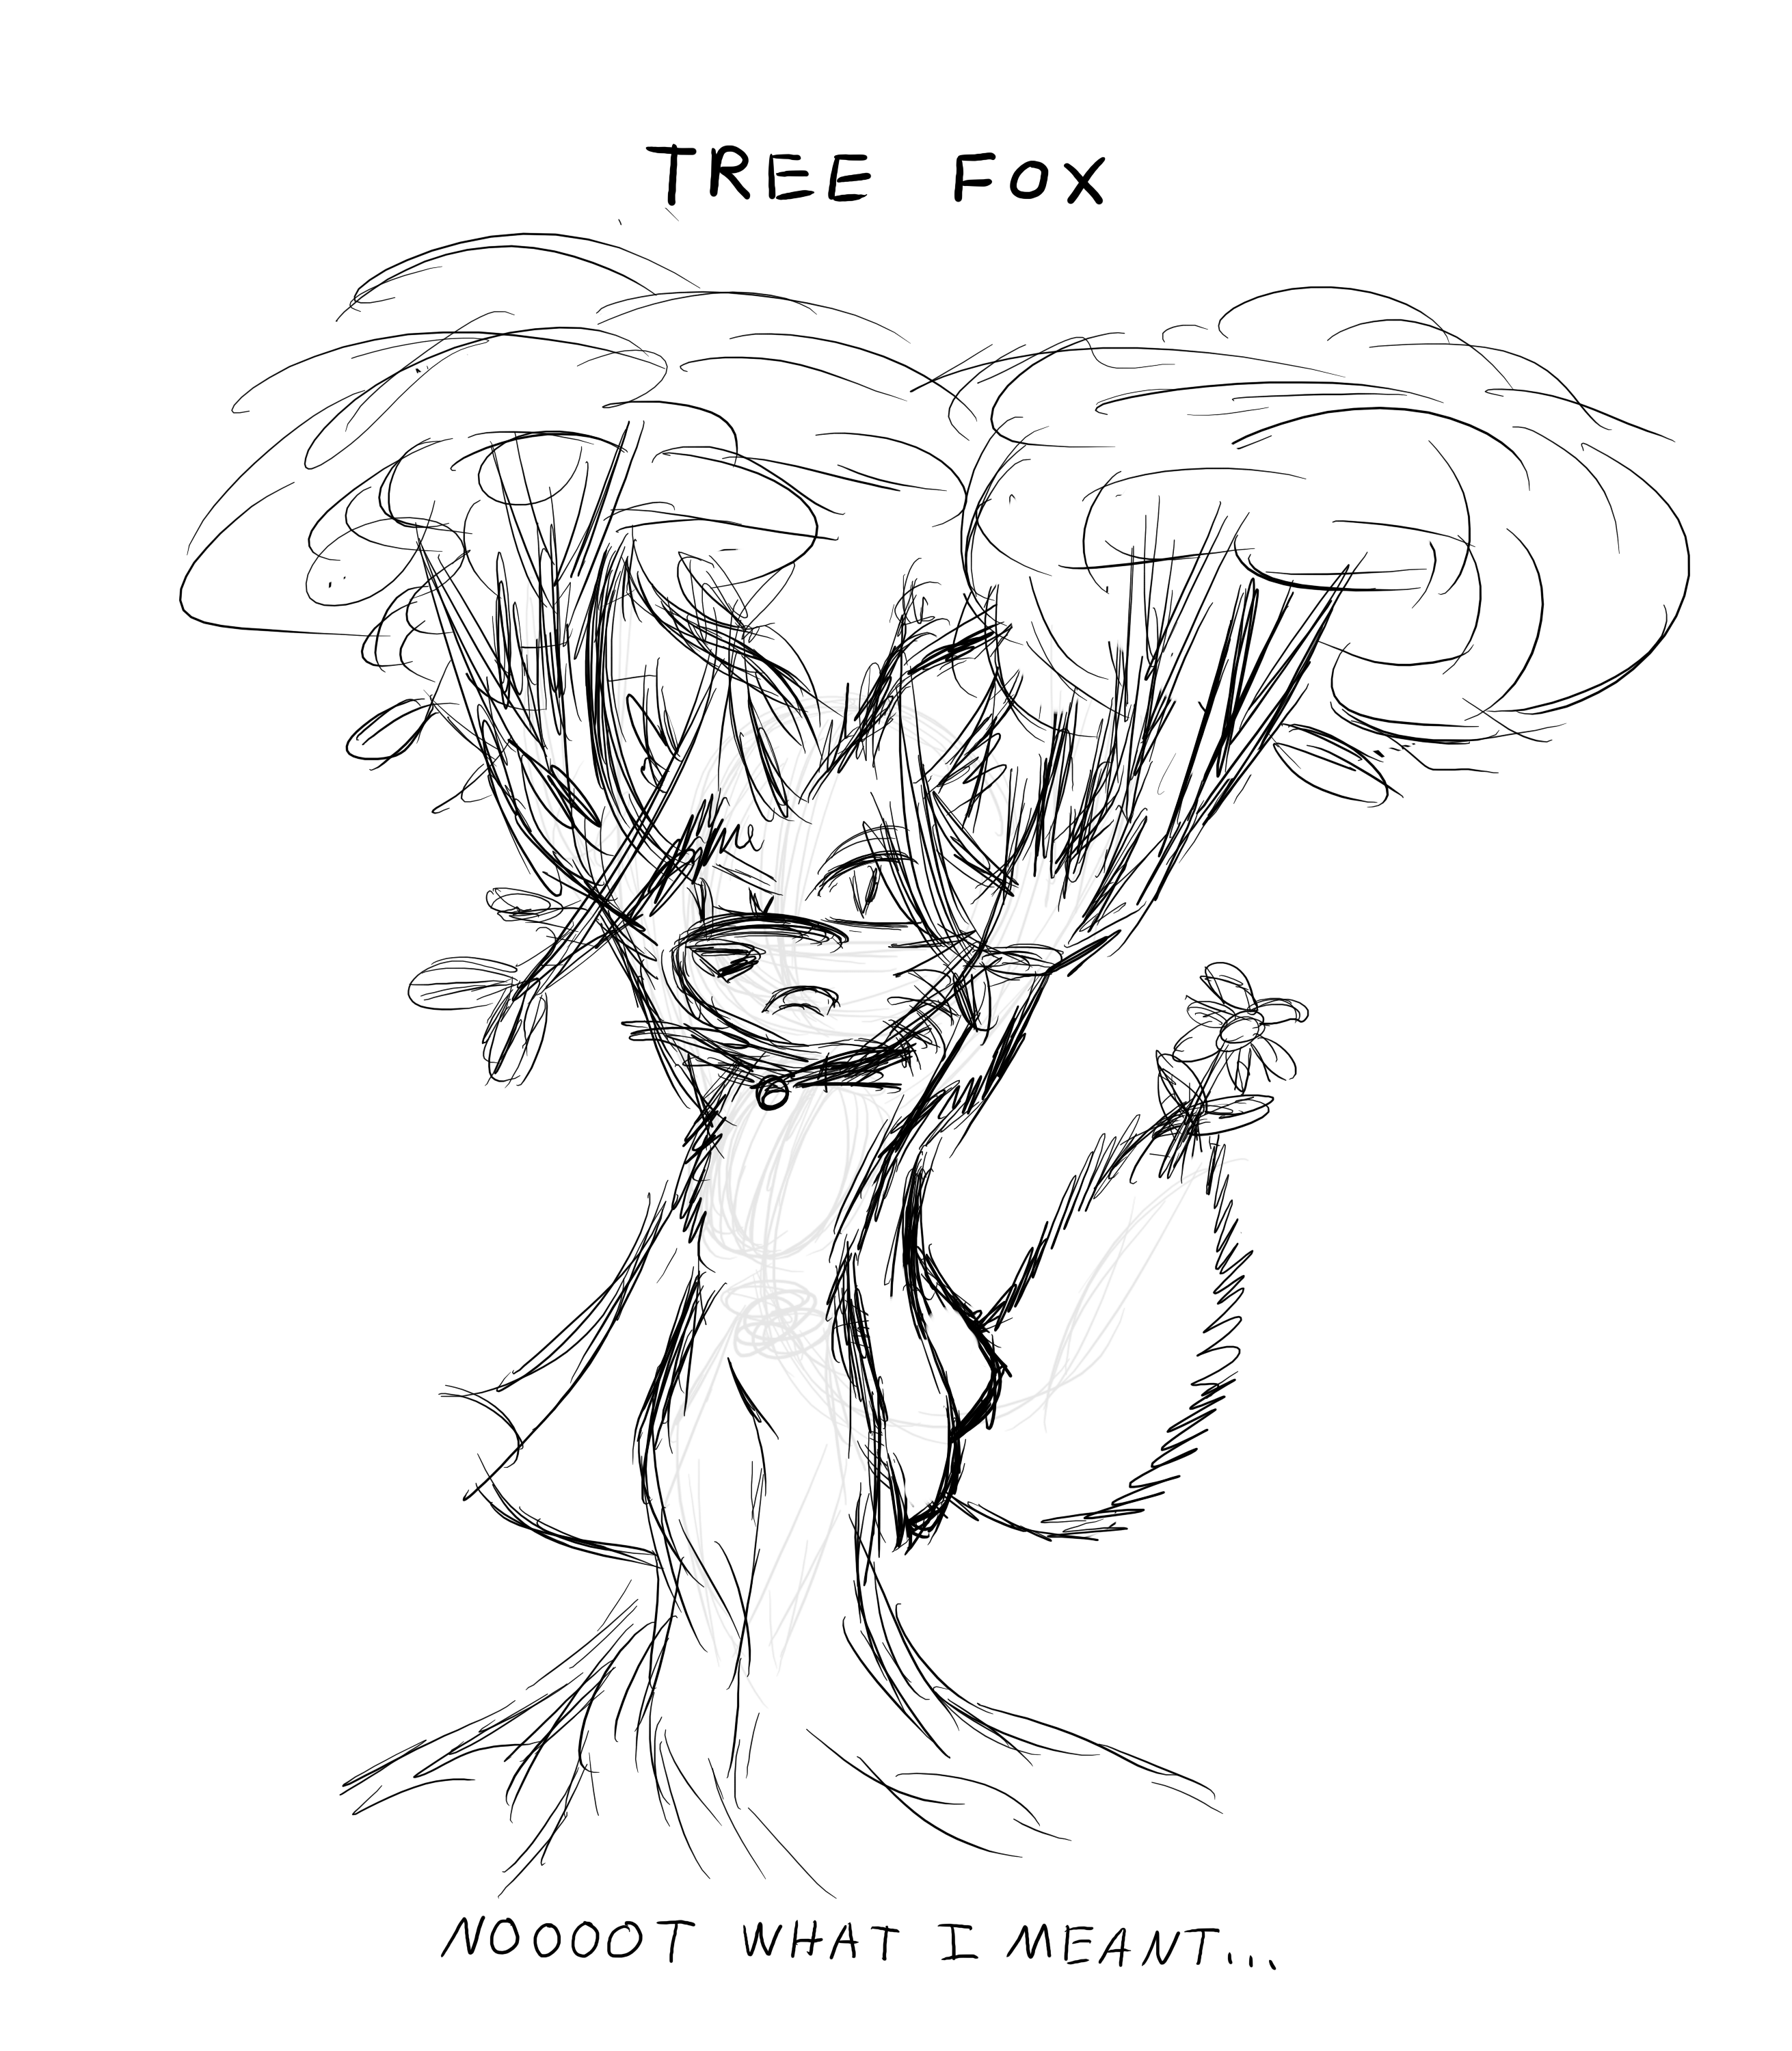 Fox Tree Art